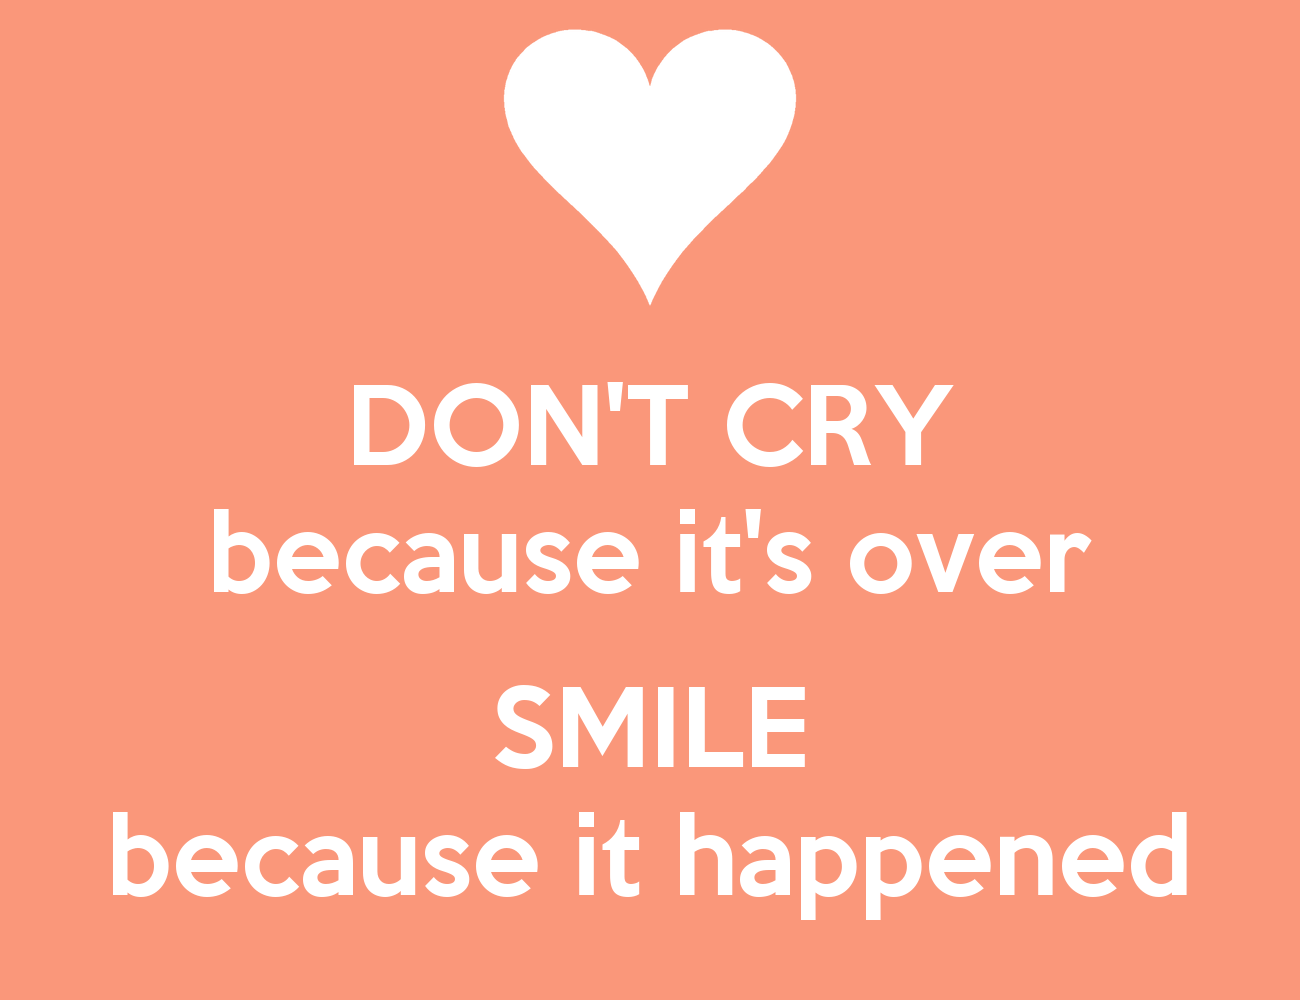 Don't cry because it's over. Smile because it happened ...